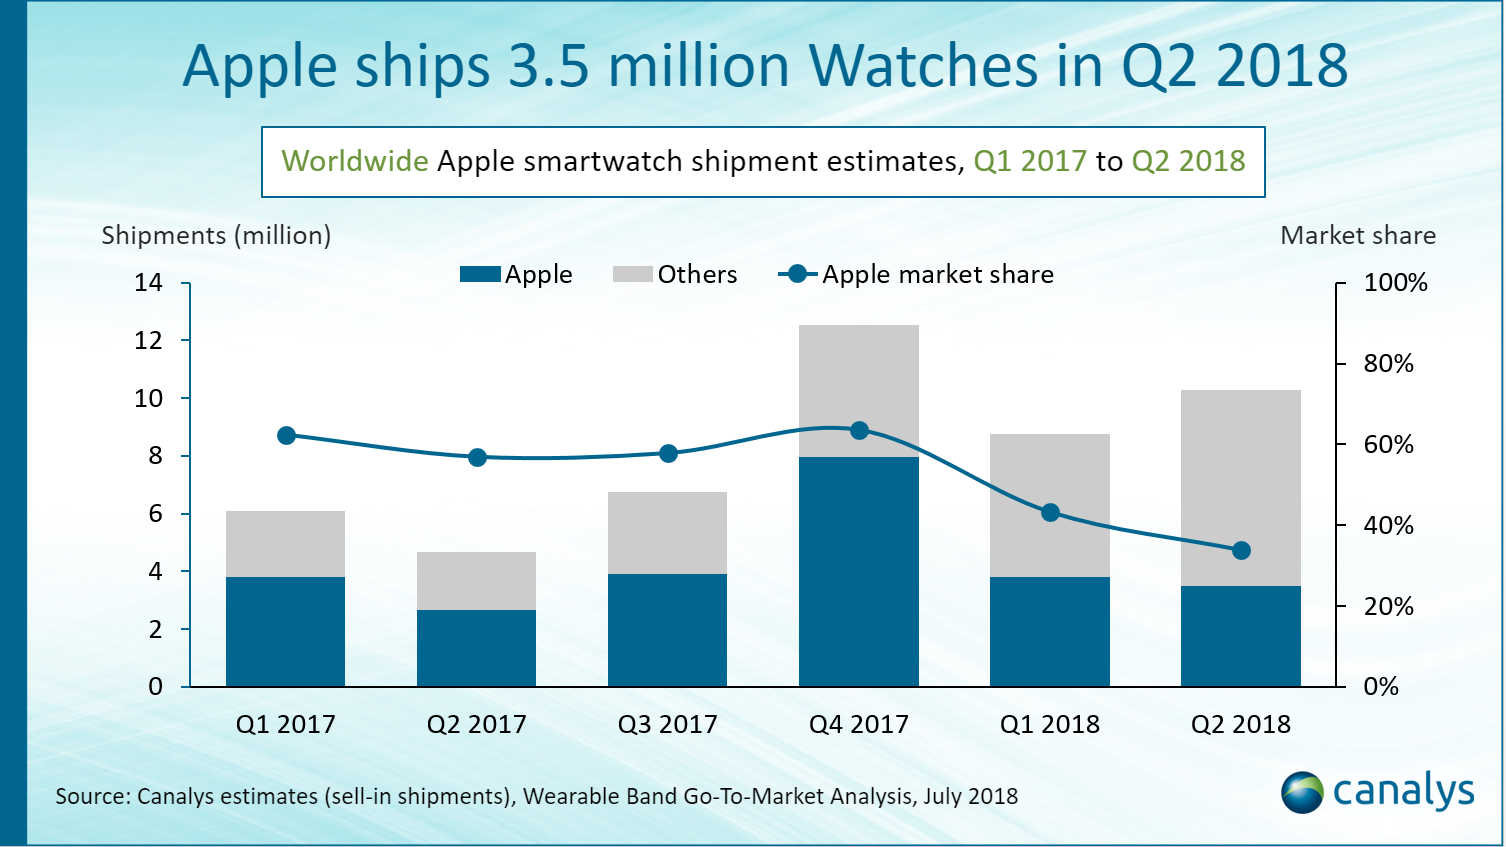 3.5M Apple Watches Shipped in Q2 2018, A 30% Year-Over-Year Increase